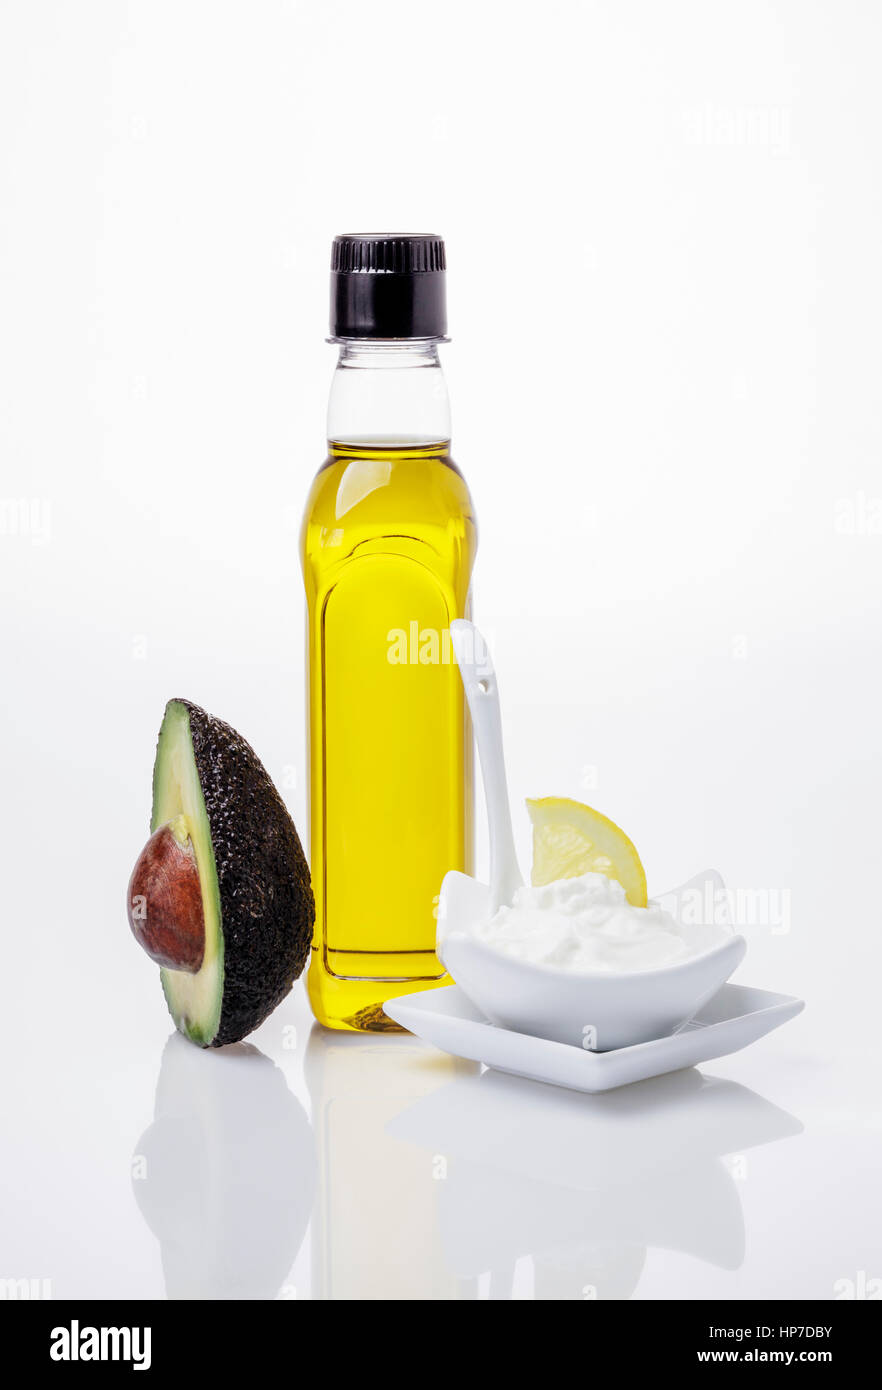 Avocado, Olive oil and Quark,  Ingredients for a DIY Face Mask for dry Skin - Stock Image